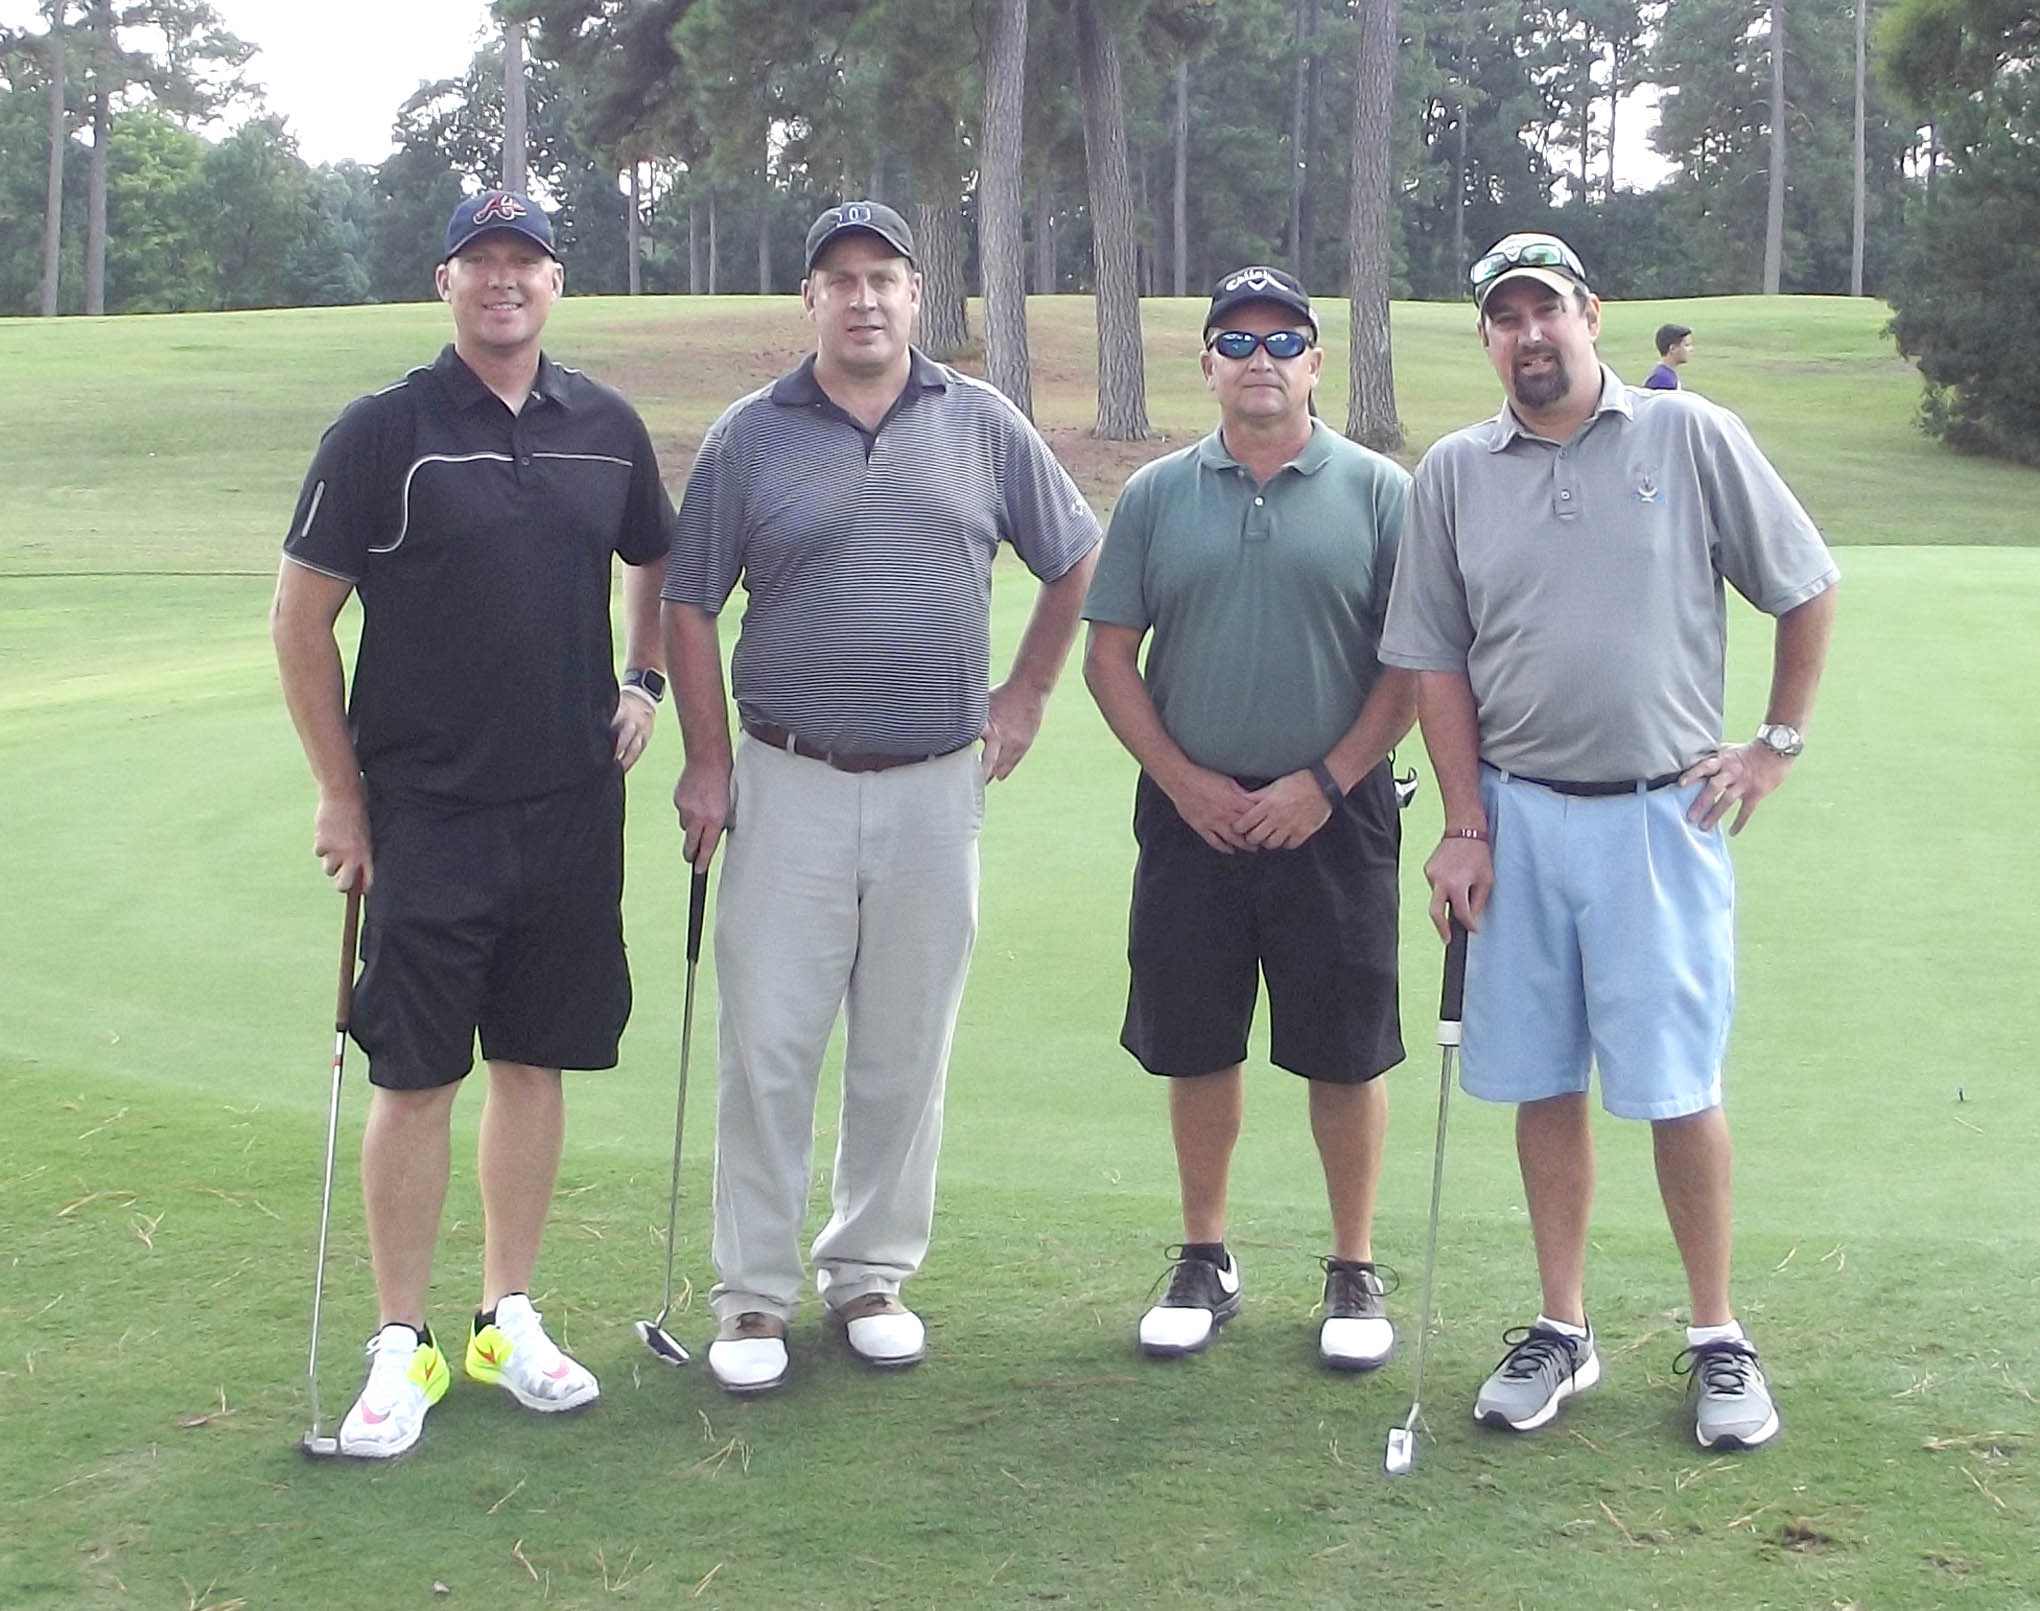 Click to enlarge,  The team of Jared Stimpson, Mitch Jacobs, Jimmy Whitaker, and Mark Midford won the third flight of the afternoon tournament of the CCCC Foundation Lee Golf Classic.